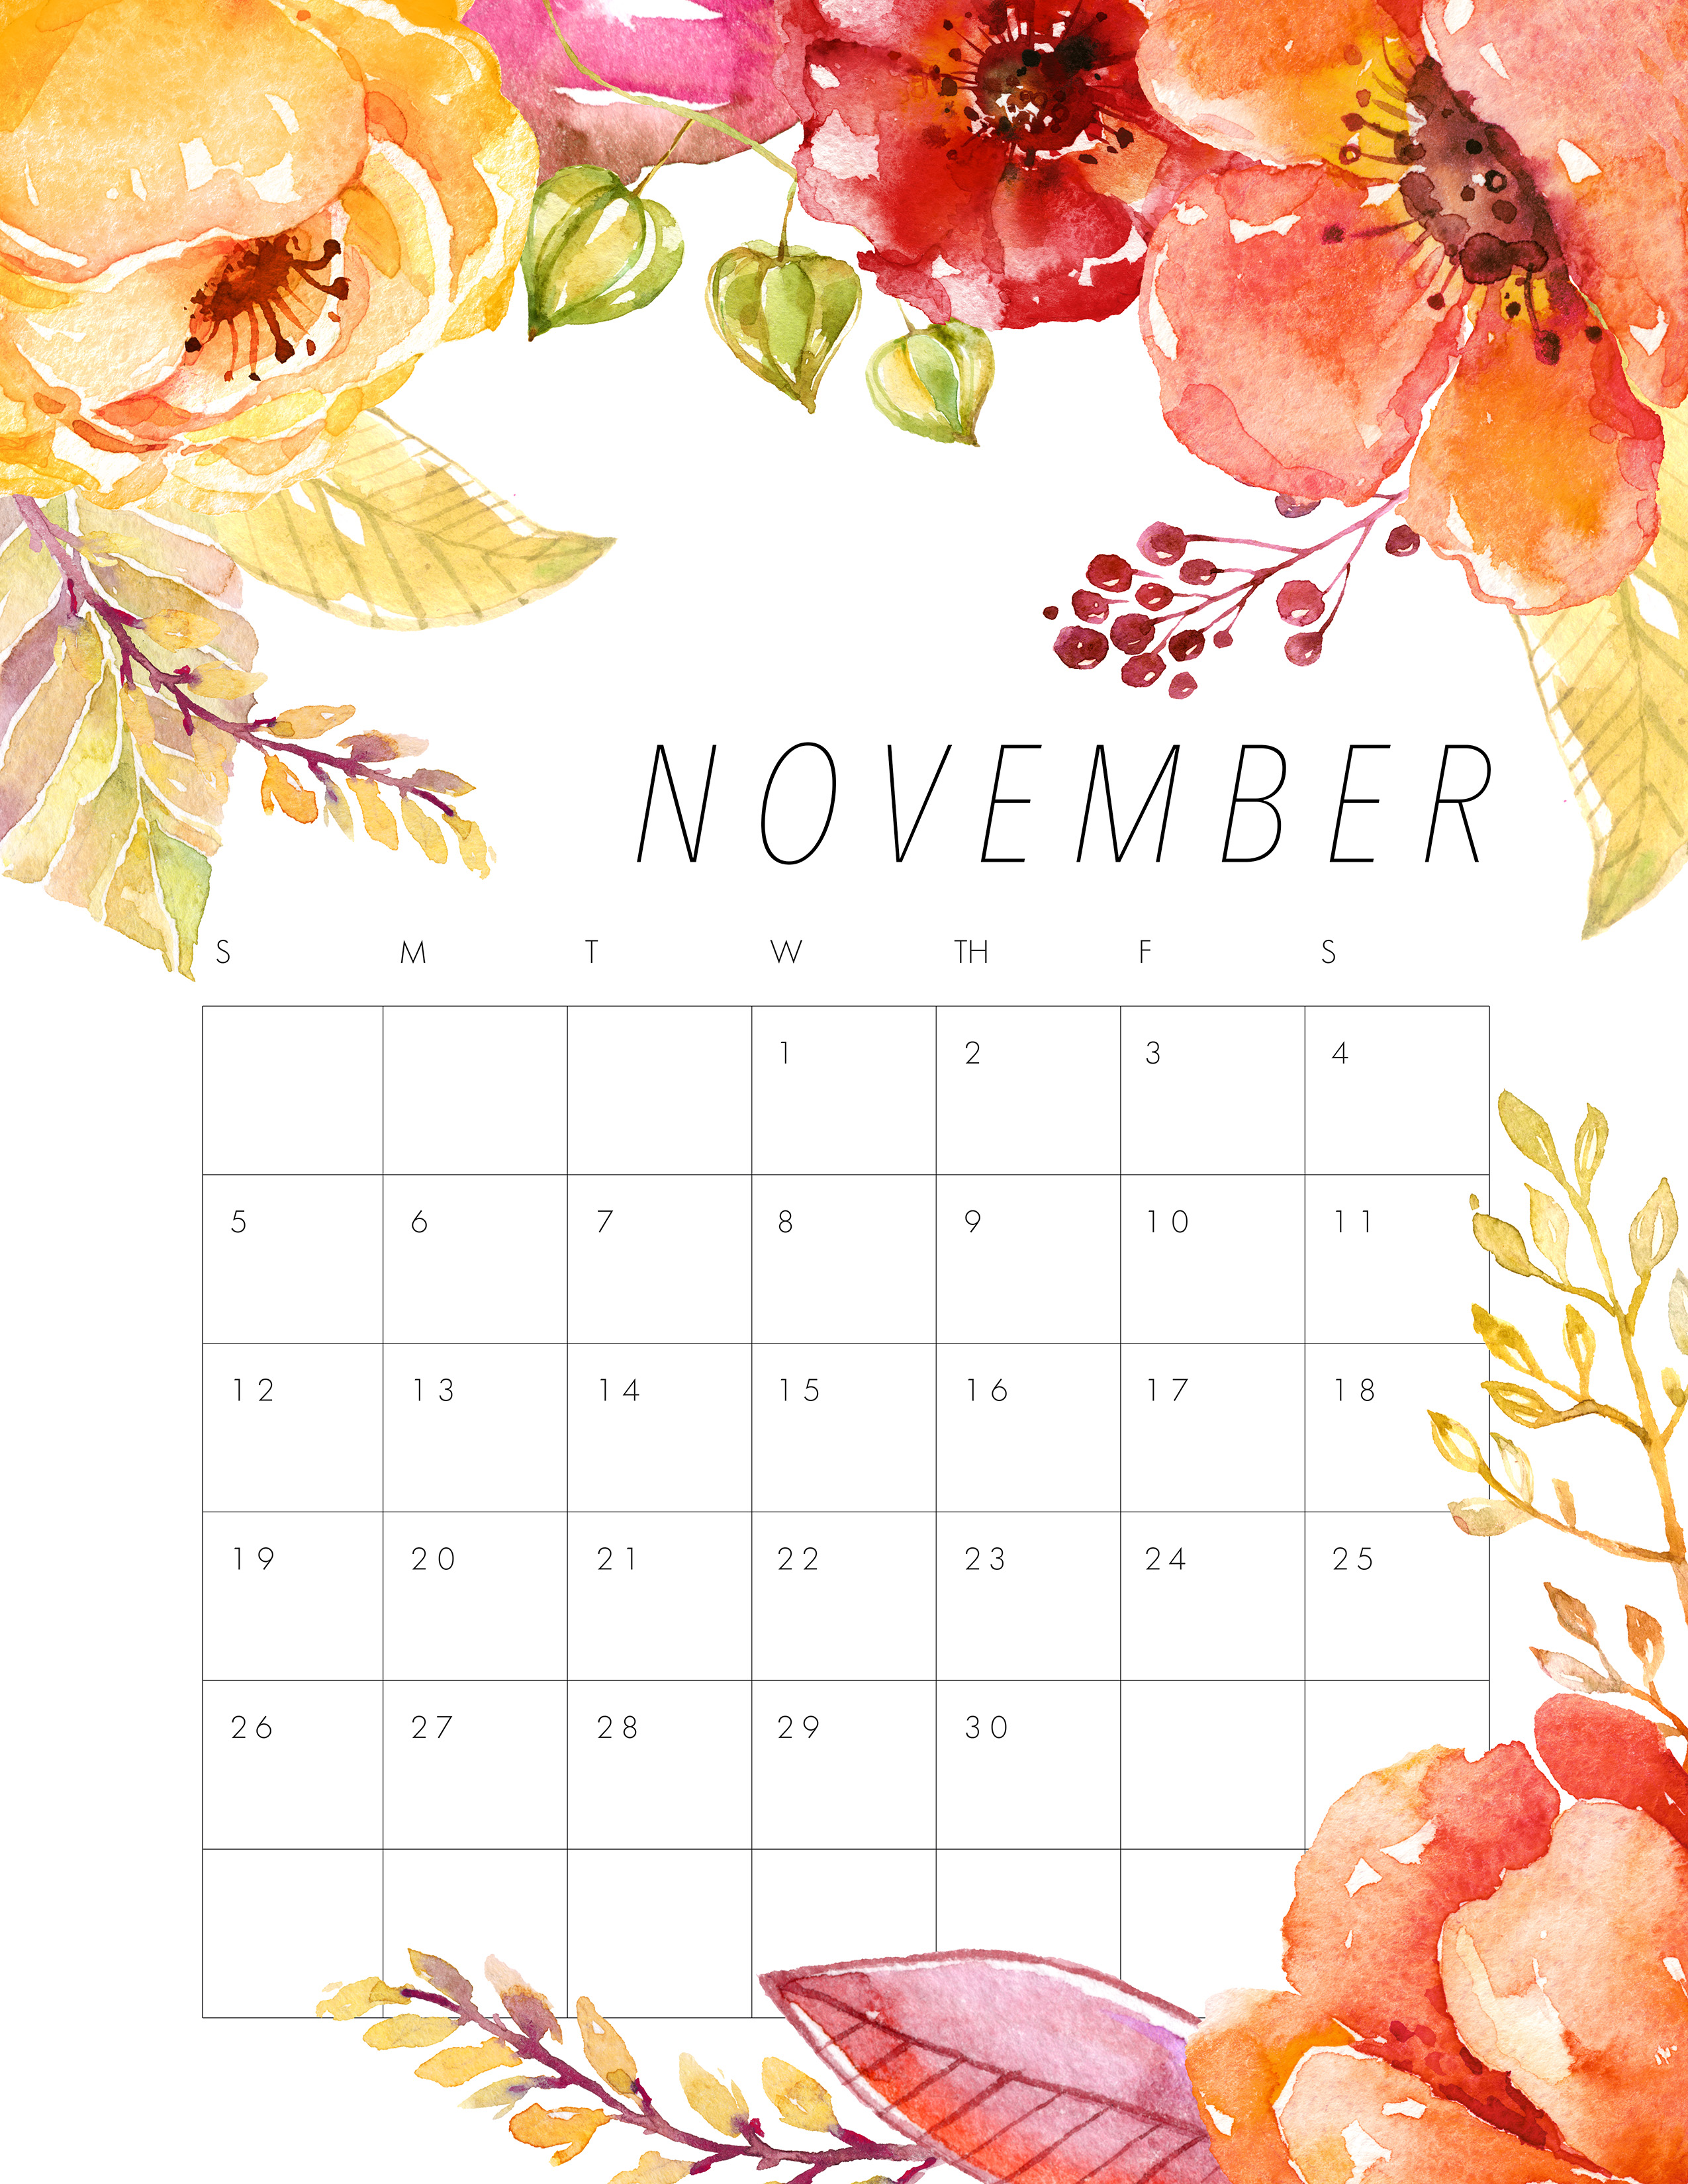 November Calendar Design : Free printable floral calendar the cottage market